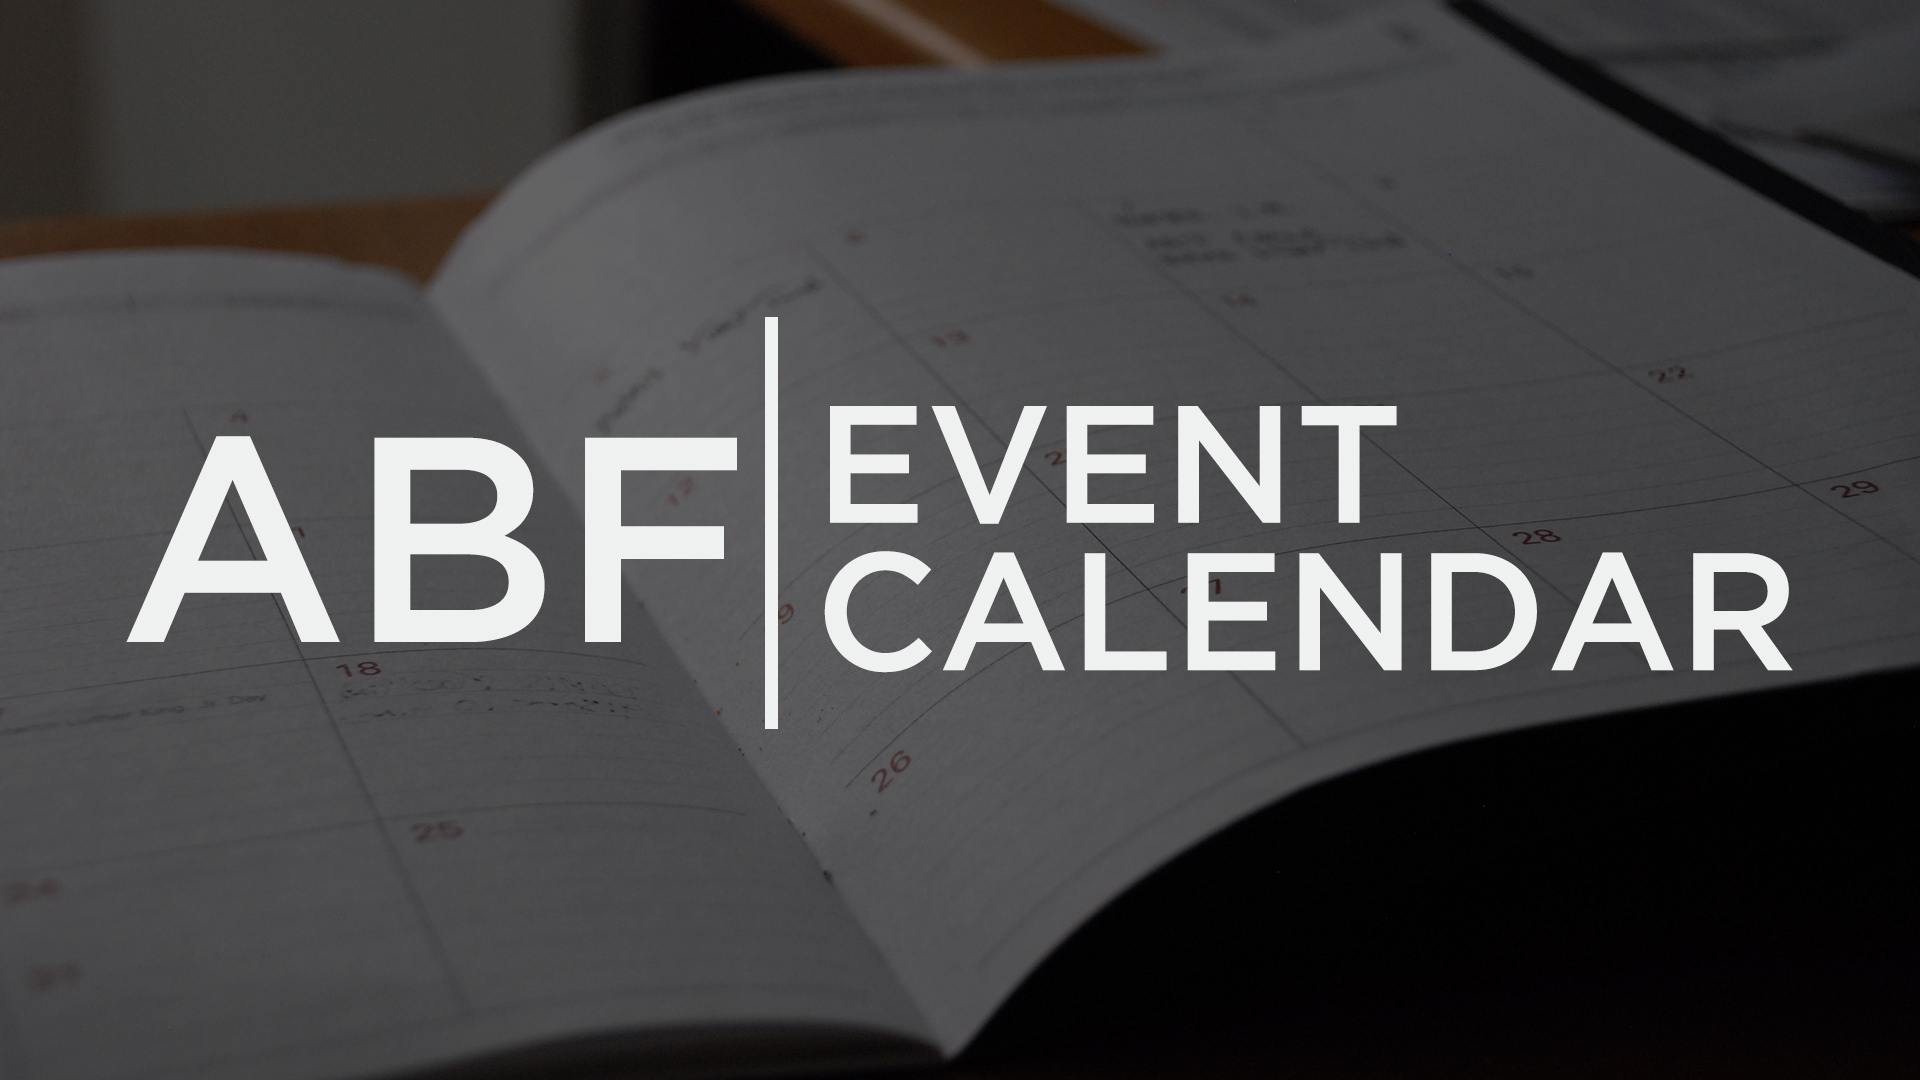 ABF Upcoming Events